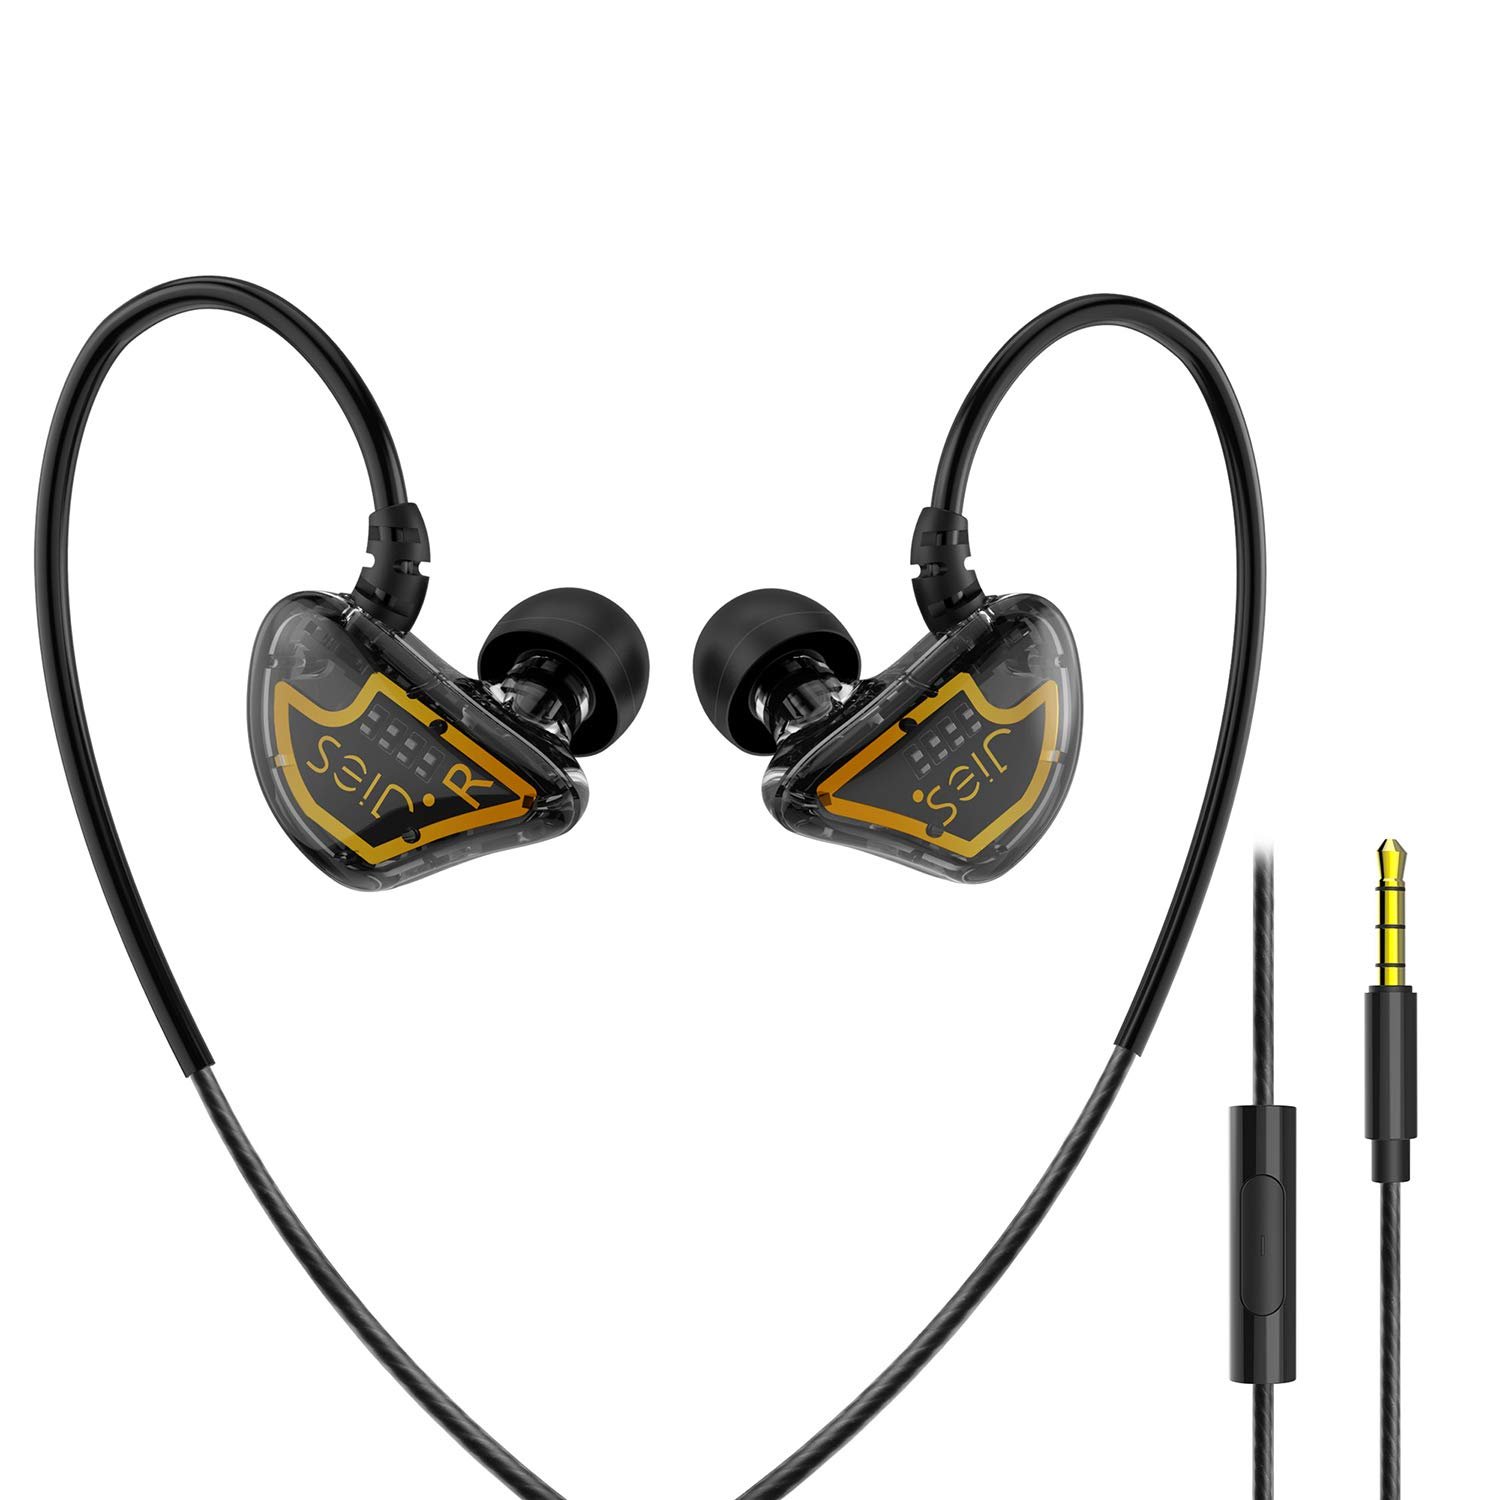 in Ear Monitor, Hifi Stereo Over Ear Monitor Headphones Noise Cancelling Earphones with Microphone Wired Earbuds for Musicians Singer Sport Headphones for iPhone, iPad, iPod, Smartphone and Mp3 Player